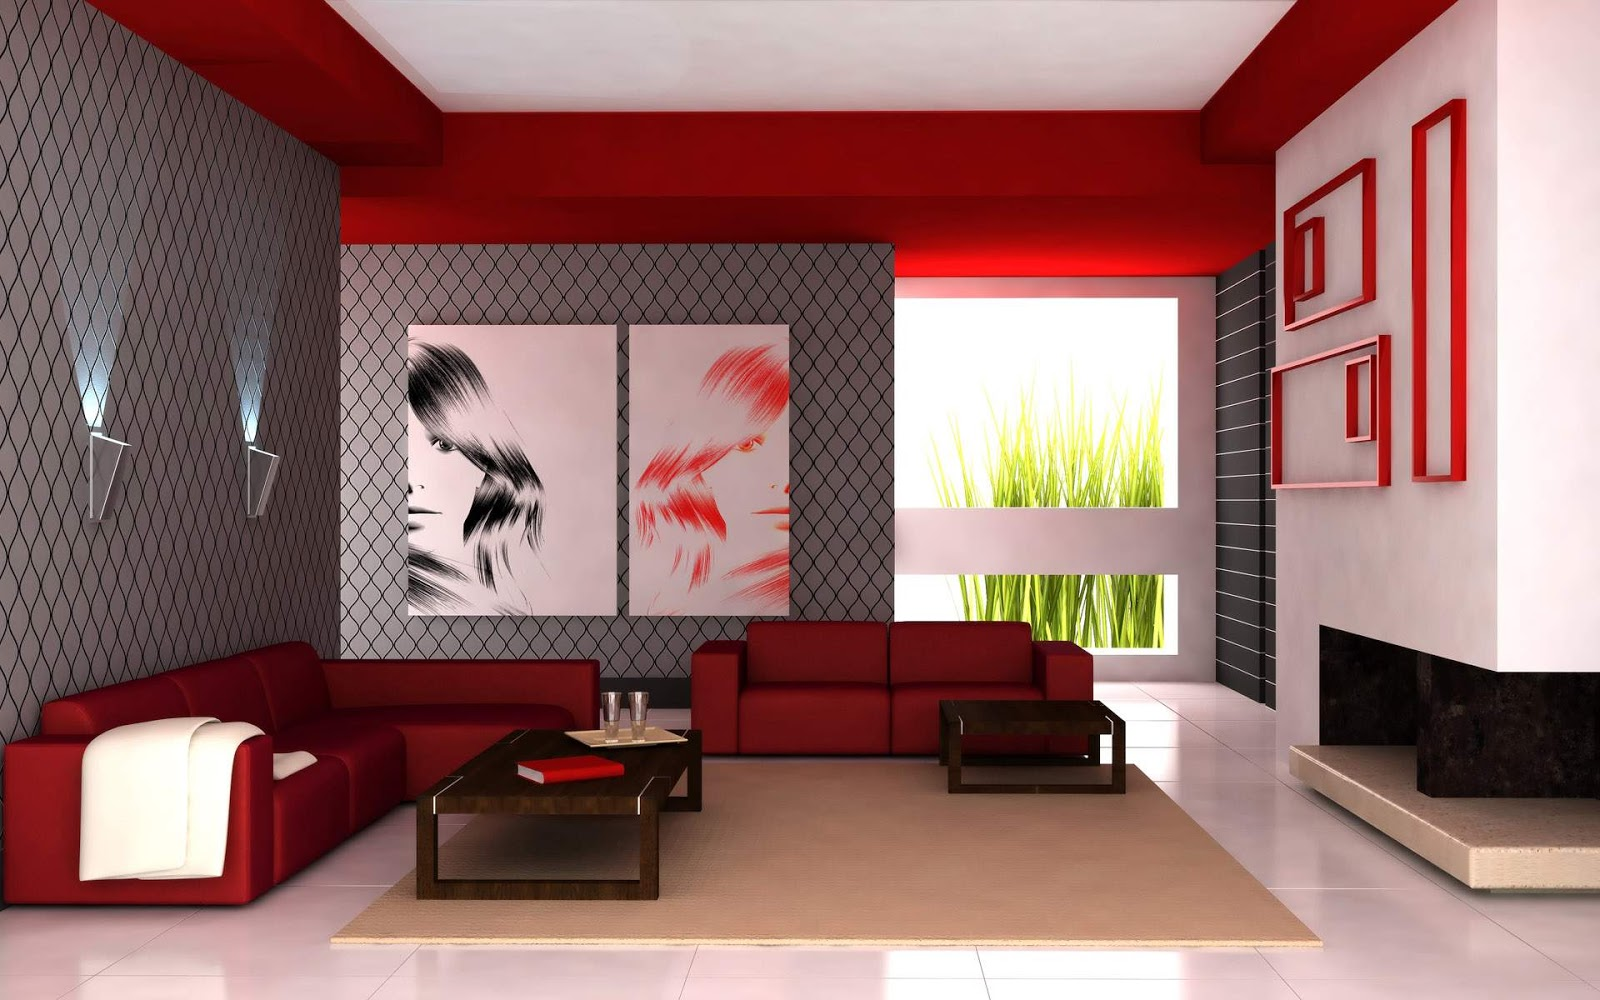 home in delhi | house in delhi | ghar ka design - gharbuilder